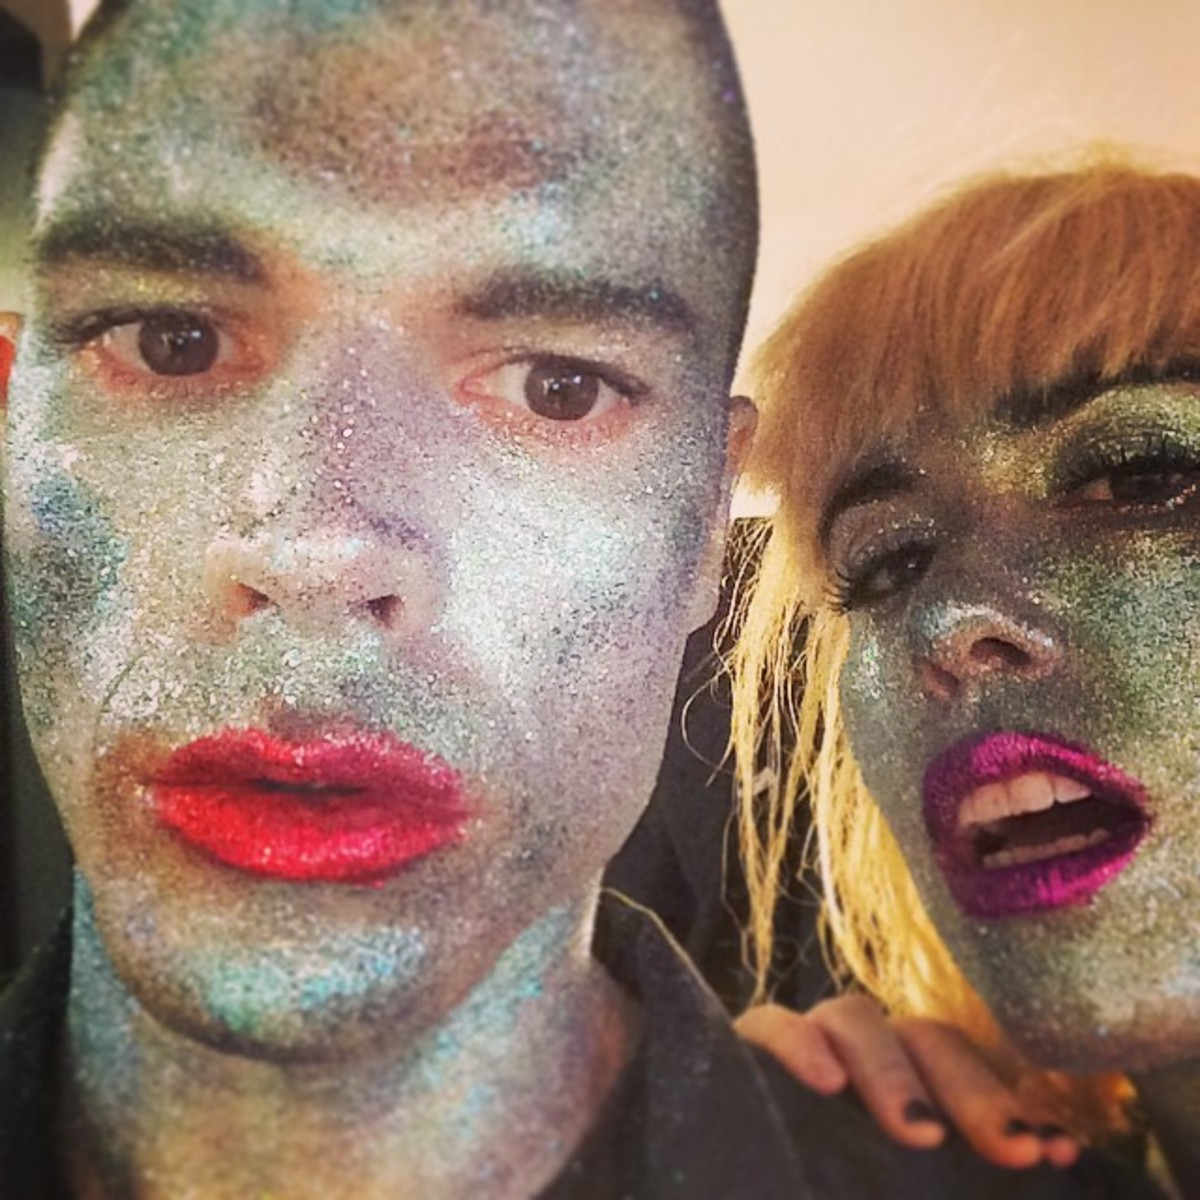 Grouplove singers backstage covered in Glitter